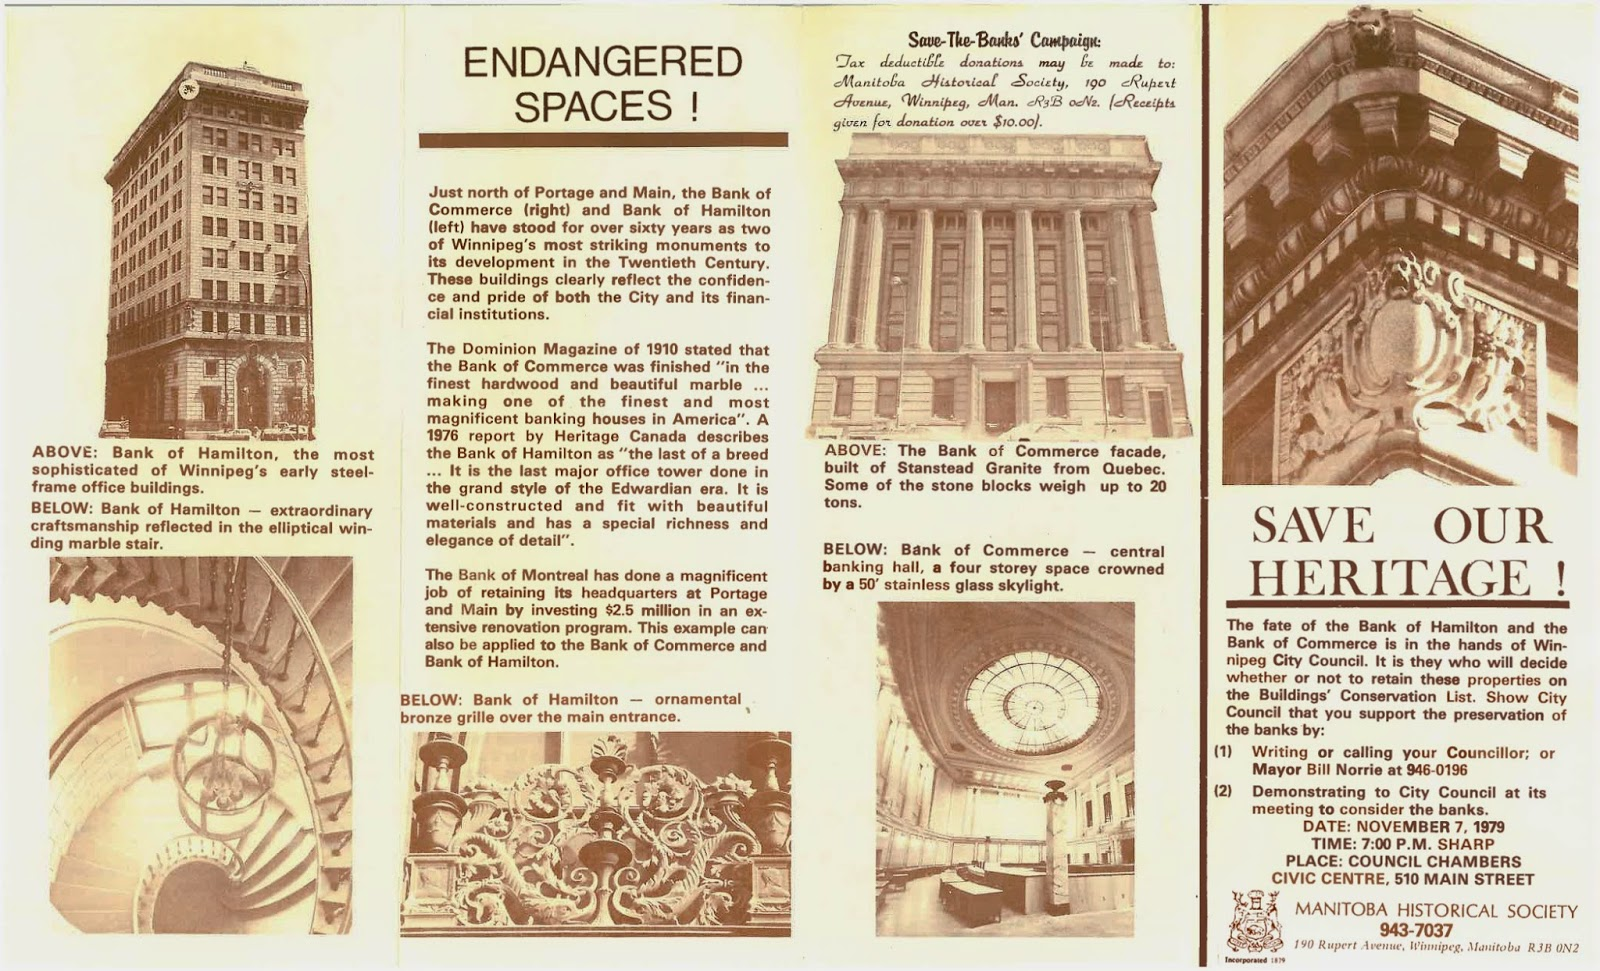 Pamphlet used as part of the effort to save 389 Main